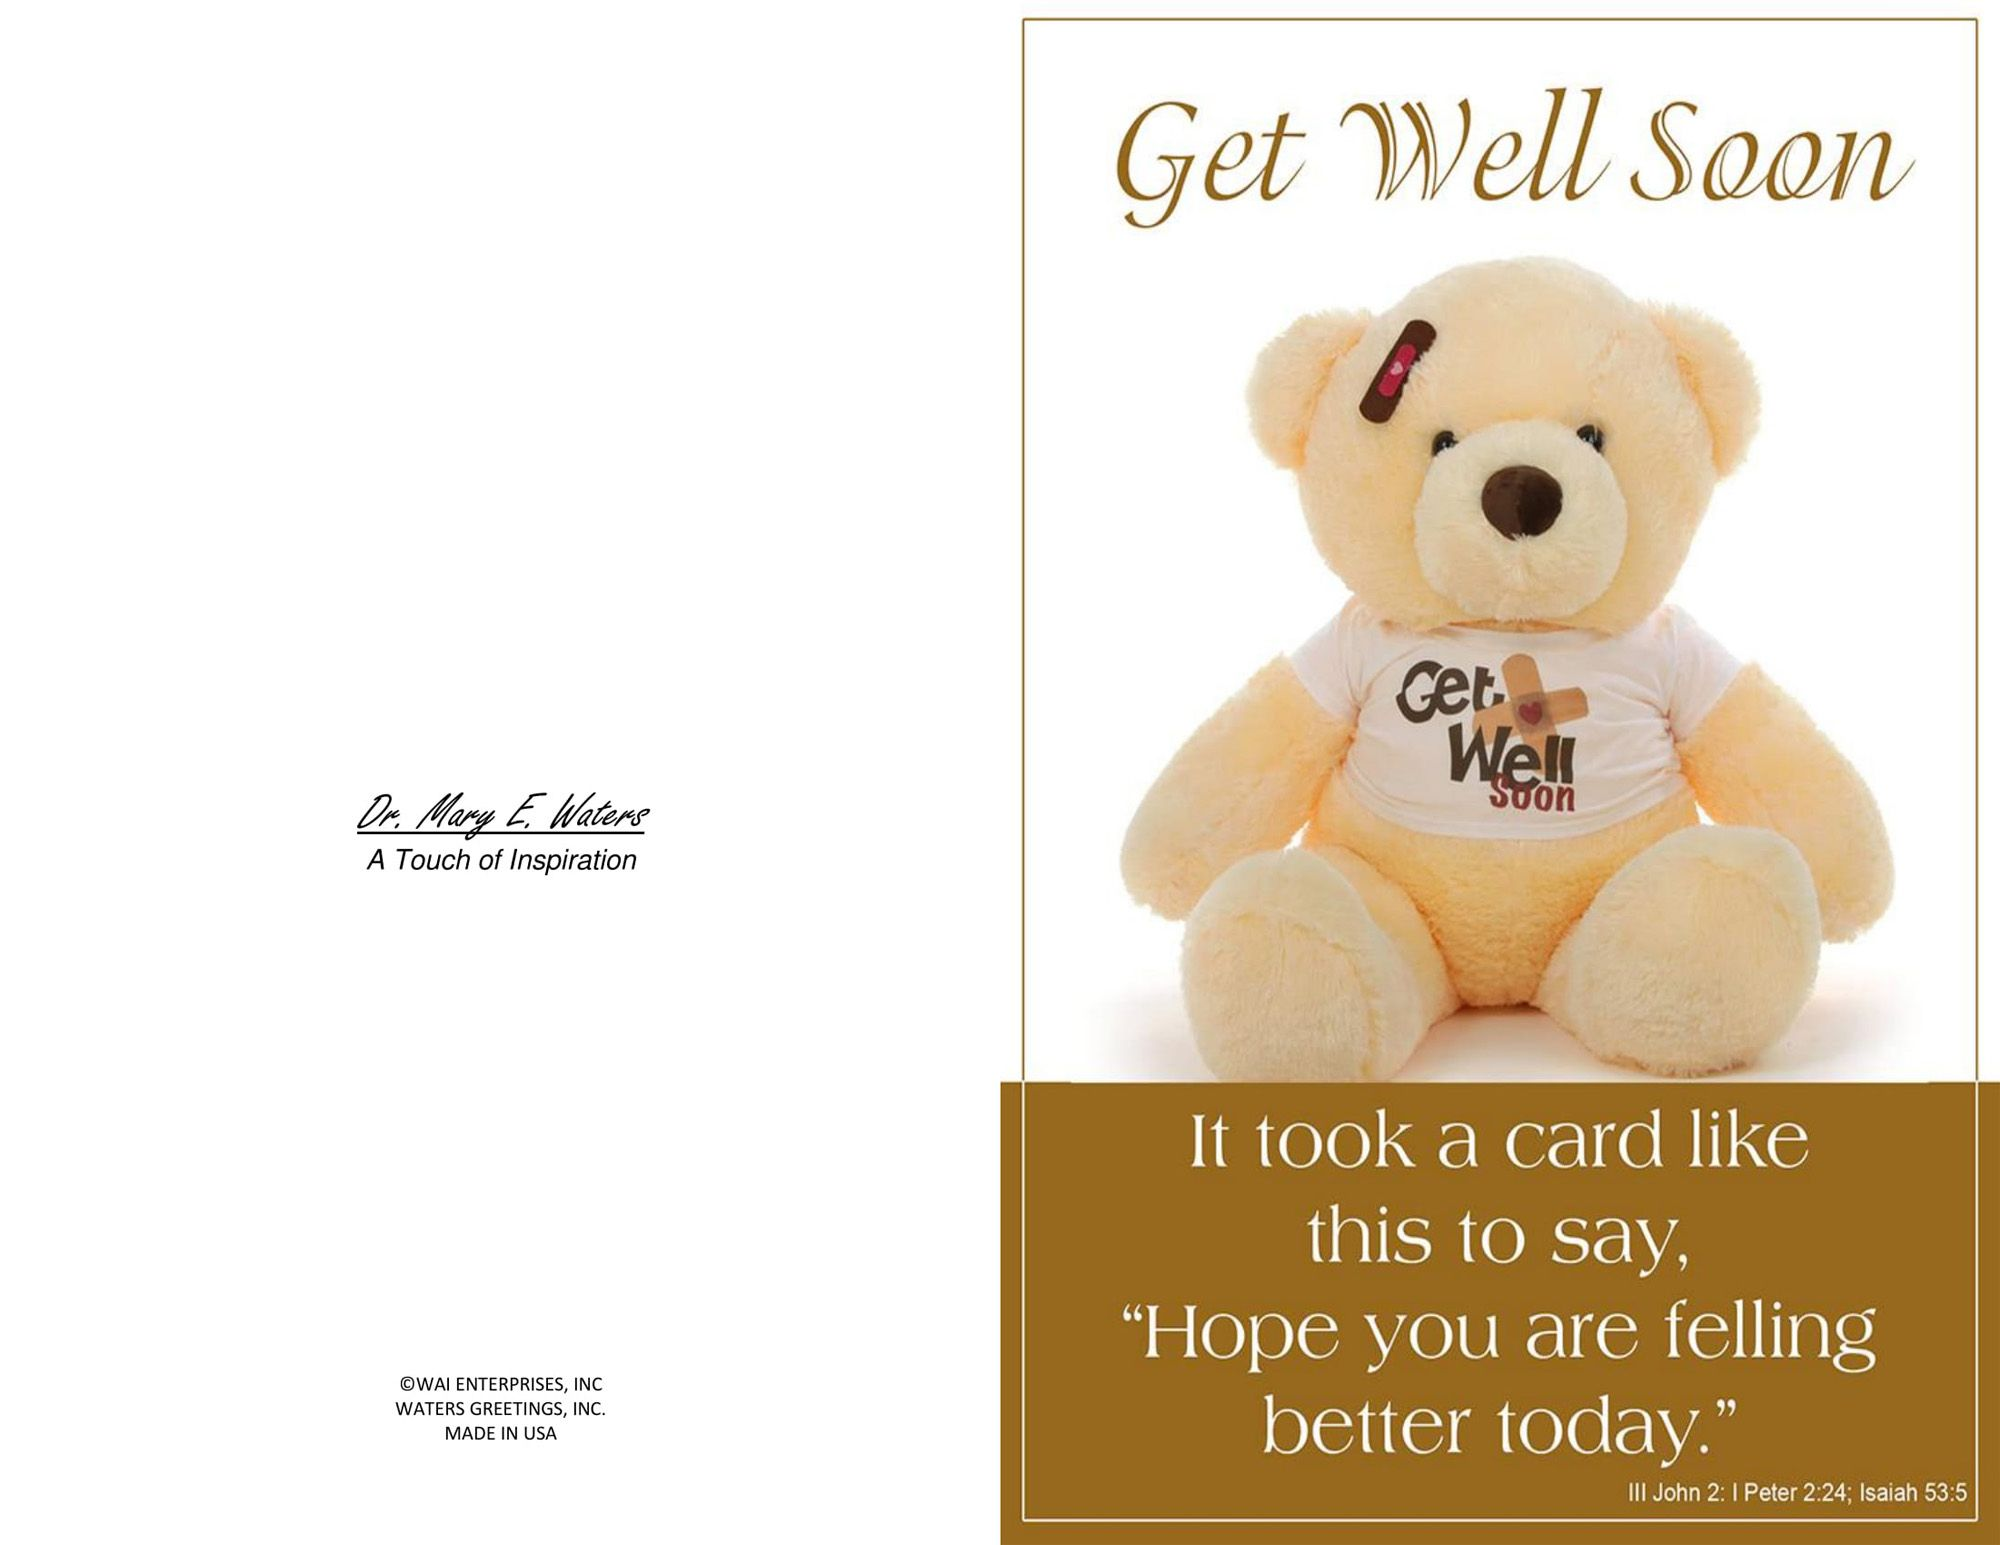 Three Printable Get Well Cards Blank Inside 5 5 X 8 5 And Inside Get Well Soon Card Template Professi Get Well Cards Gift Card Template Note Card Template